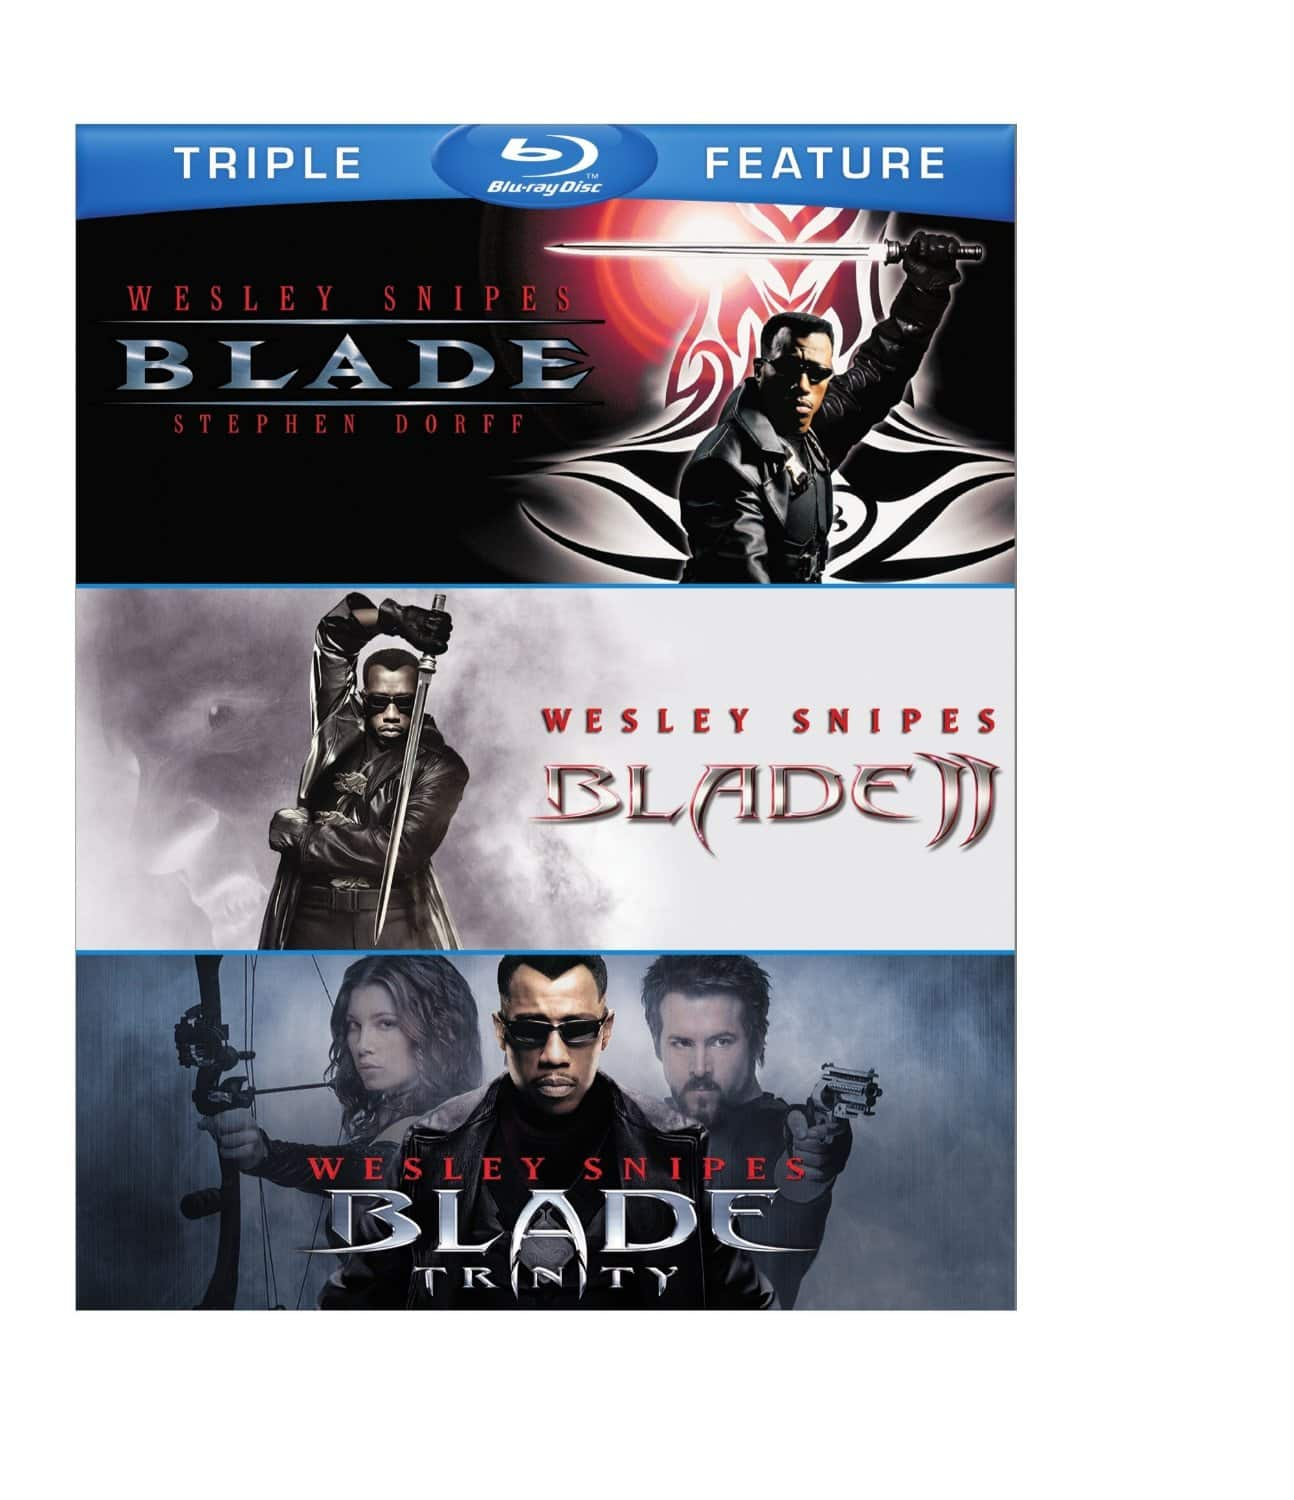 Blade Trilogy Blu-ray Set $12.49 at amazon or $14.99 at Best Buy